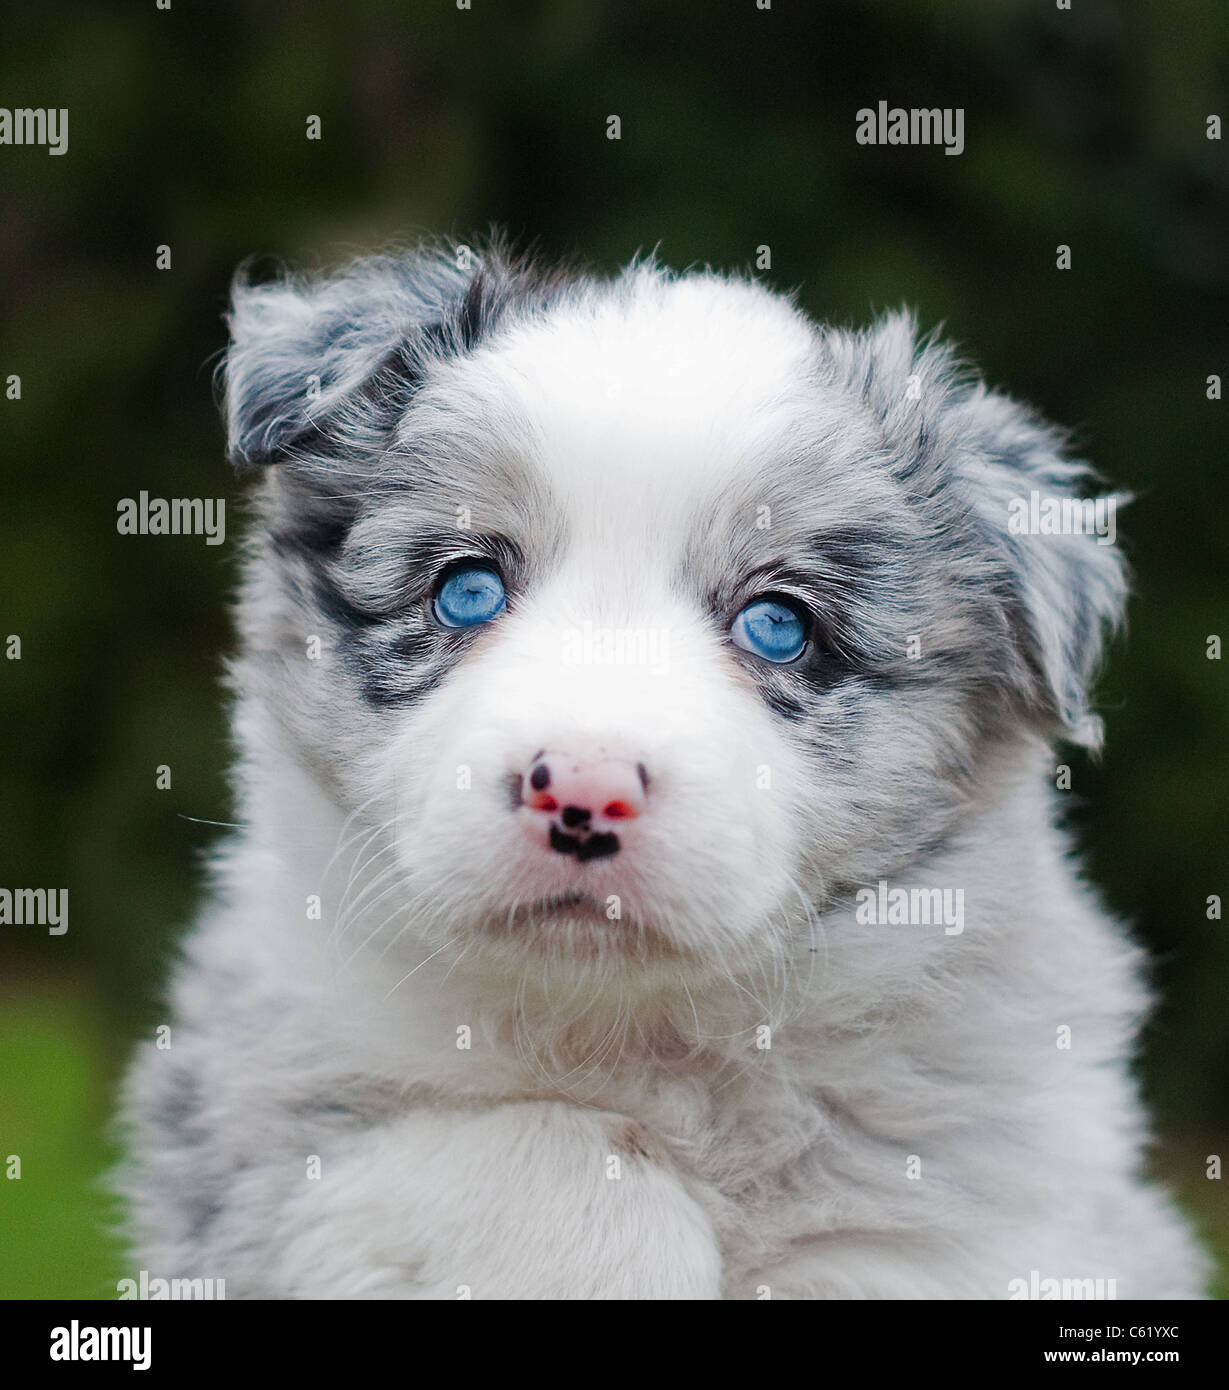 Cute Puppies Wallpapers For Mobile Cute Blue Merle Collie Puppy With Blue Eyes Stock Photo